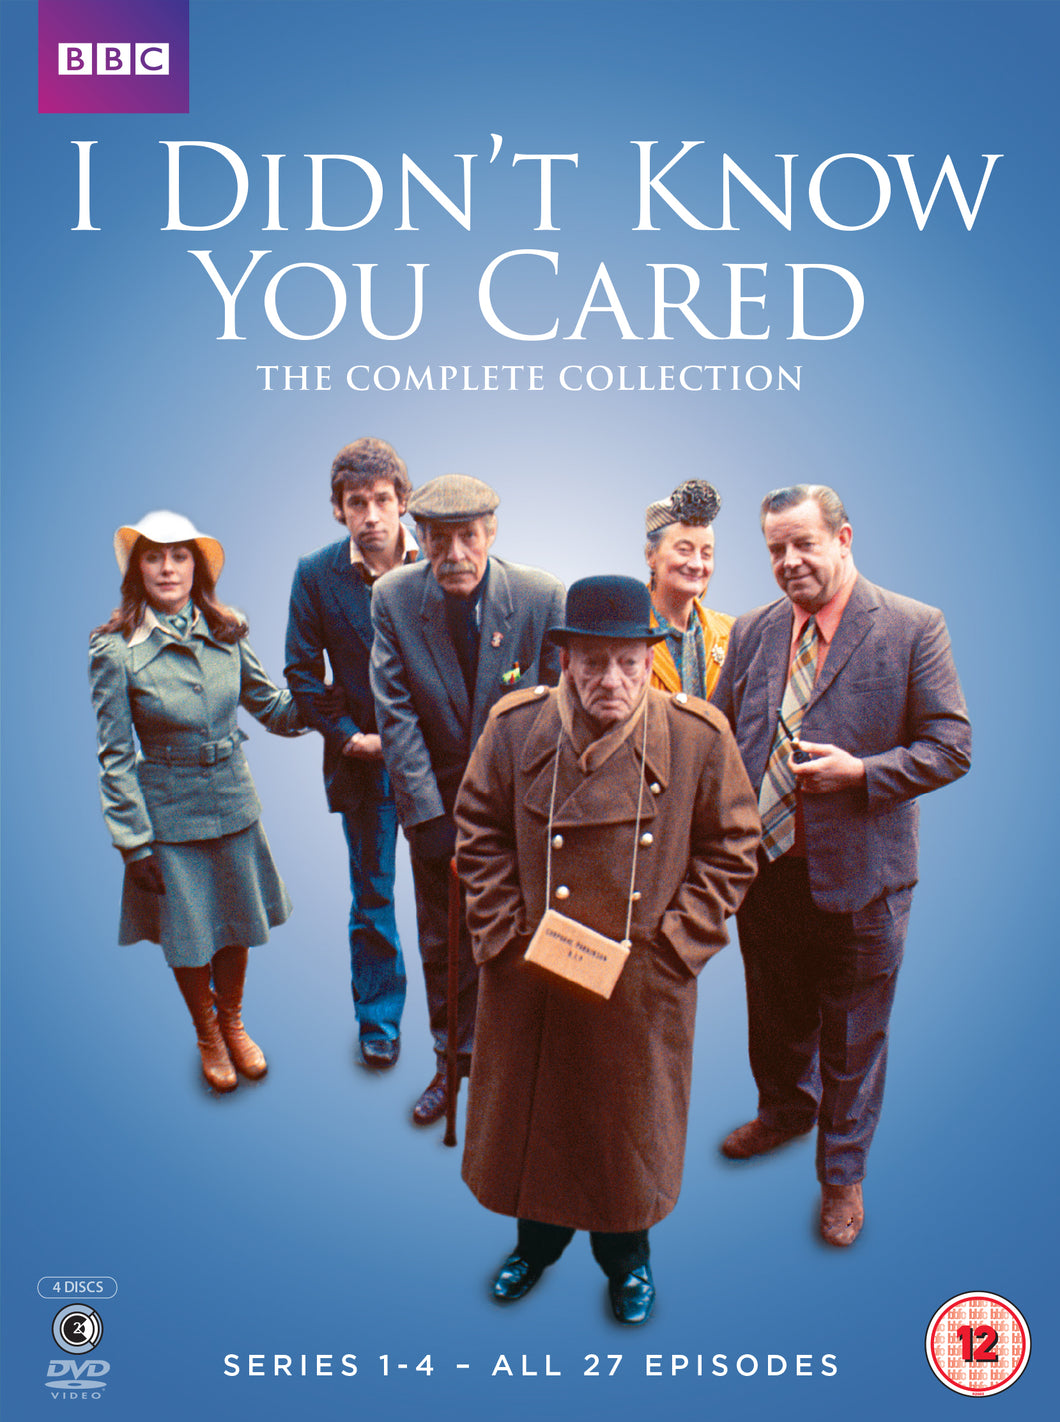 I Didn't Know You Cared: The Complete DVD Collection